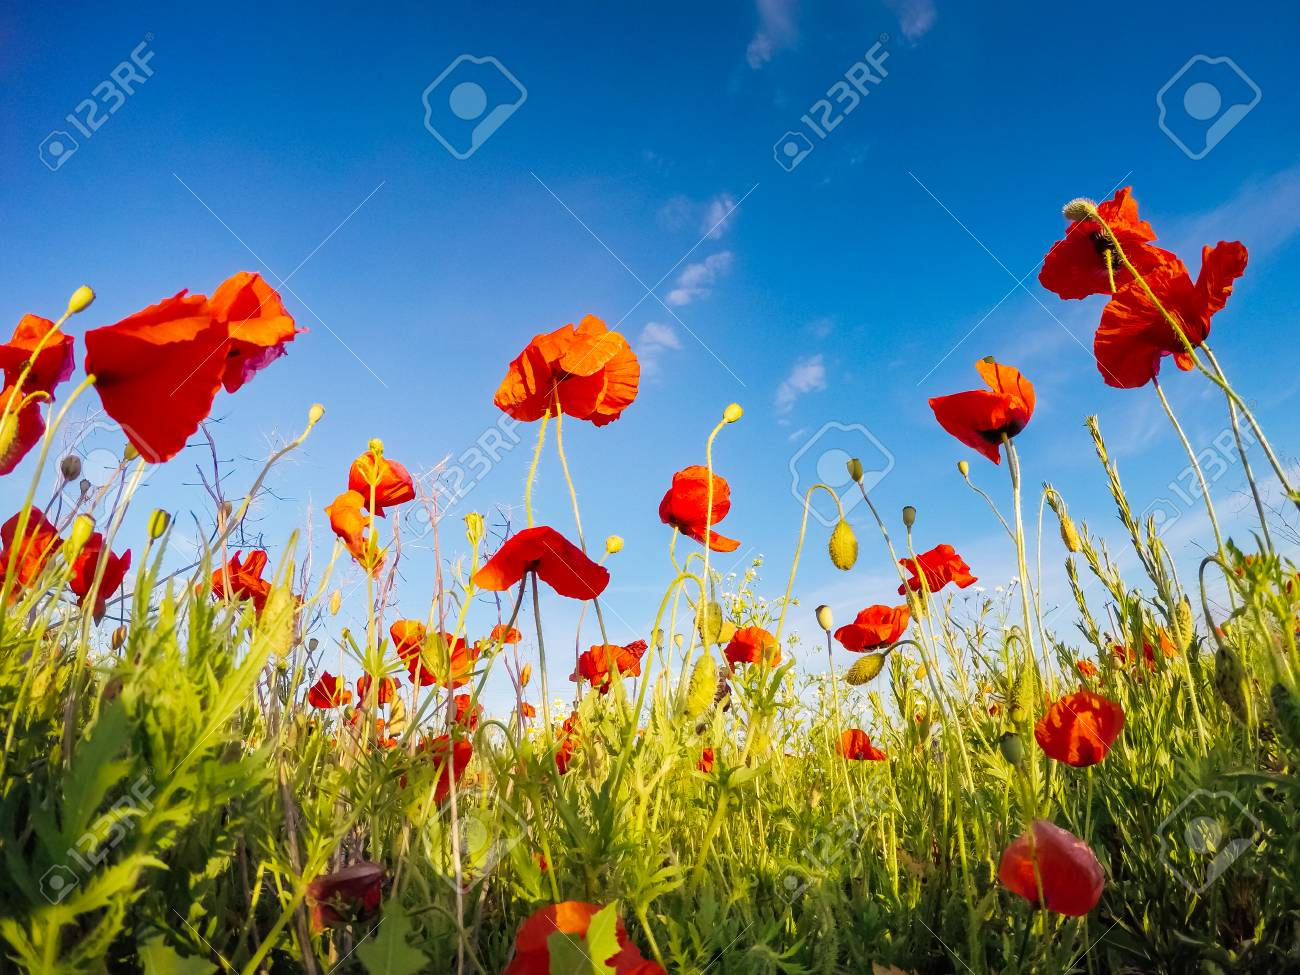 Blooming red poppies on field against the sun, blue sky. Wild flowers in springtime. Dramatic day and gorgeous scene. Wonderful image of wallpaper. Explore the world's beauty. Artistic picture. - 101341594